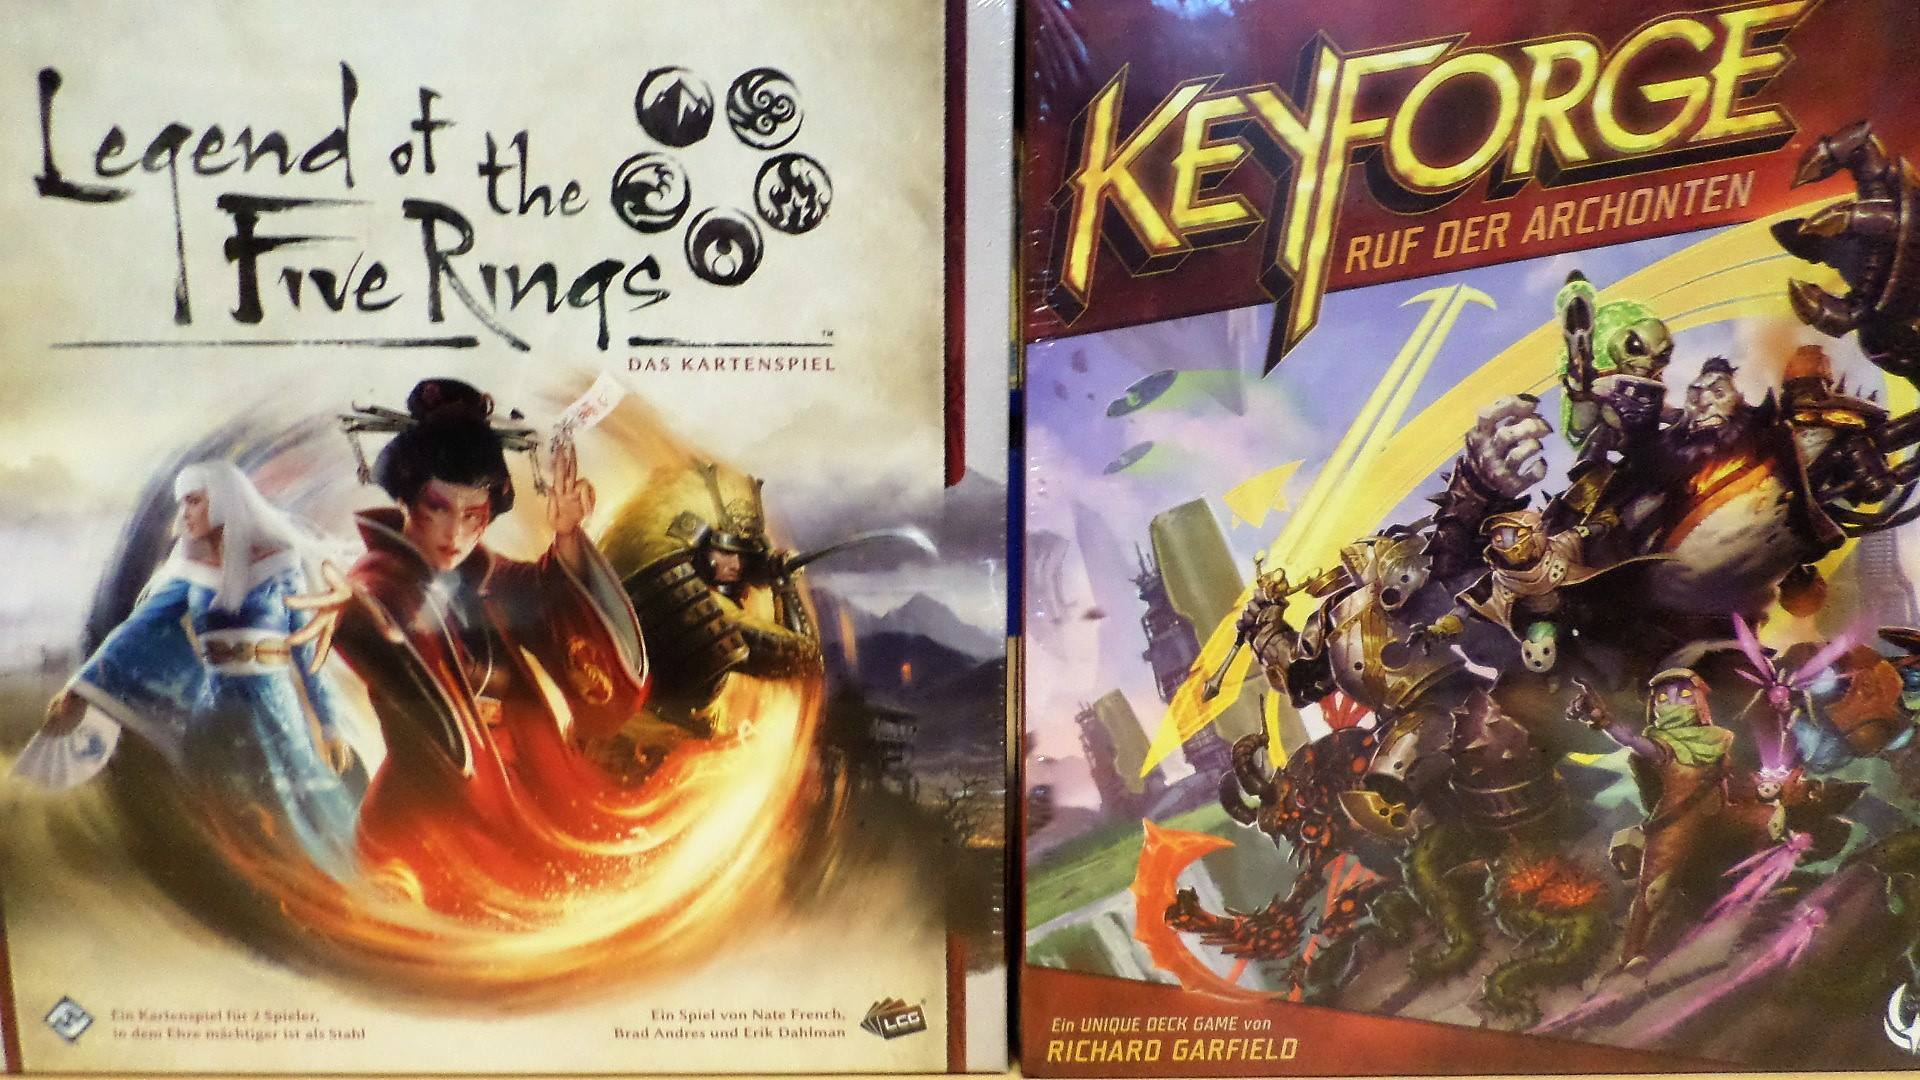 Legend of the Five Rings und Keyforge